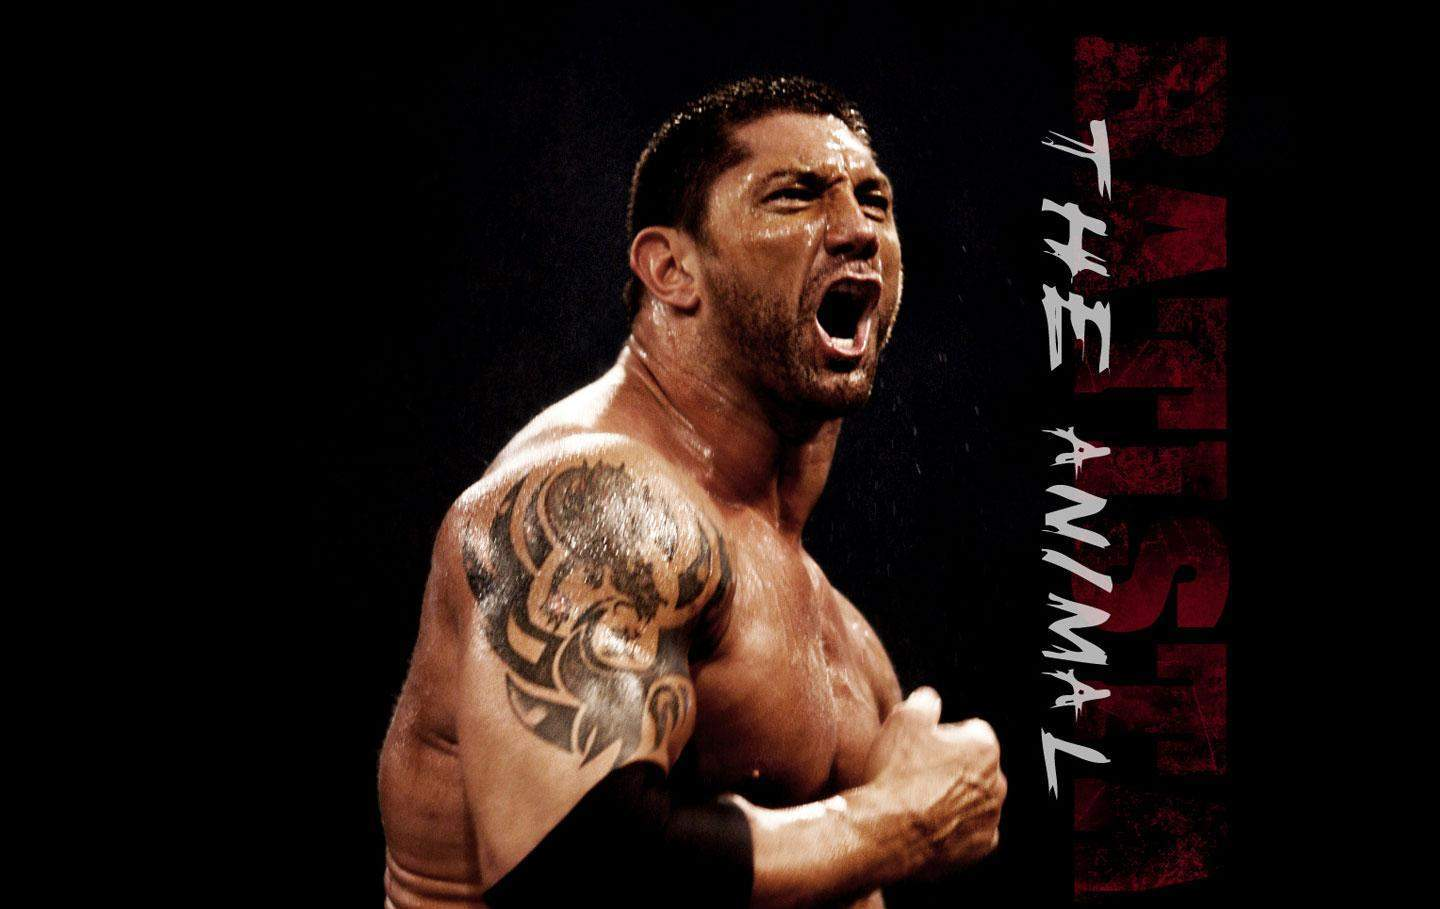 http://3.bp.blogspot.com/-n_io-Xzlscw/T1CKnJY8P8I/AAAAAAAABH4/cAw9LLQn-3w/s1600/wallpaper-of-the-animal-batista.jpg